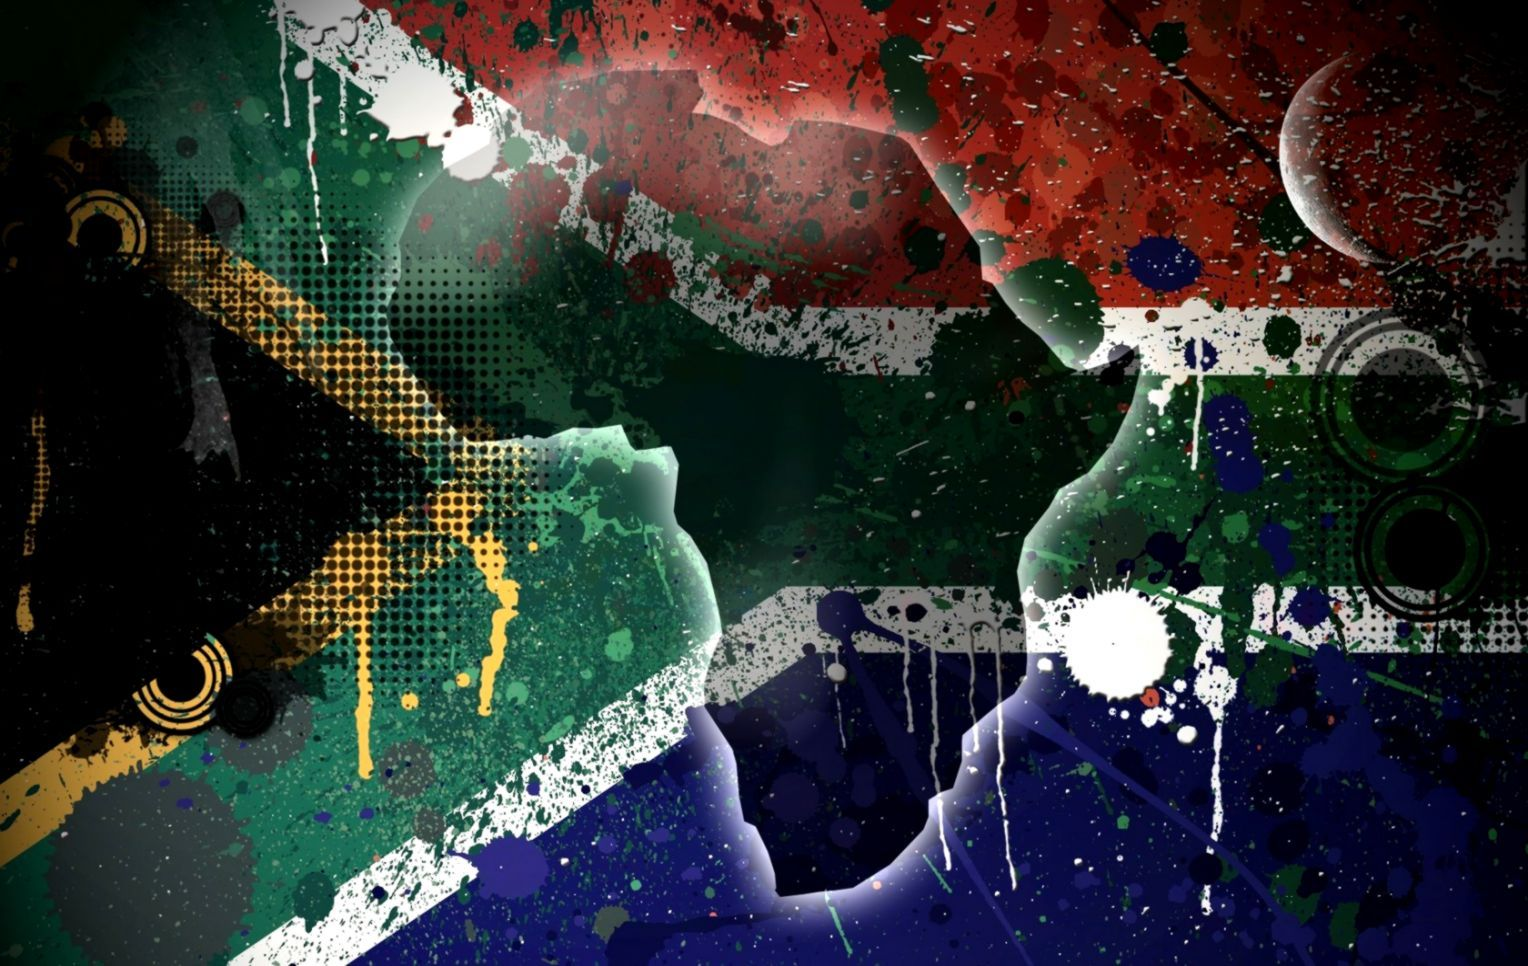 1528x966 South Africa Flag Wallpapers Background | Wallpapers Arena